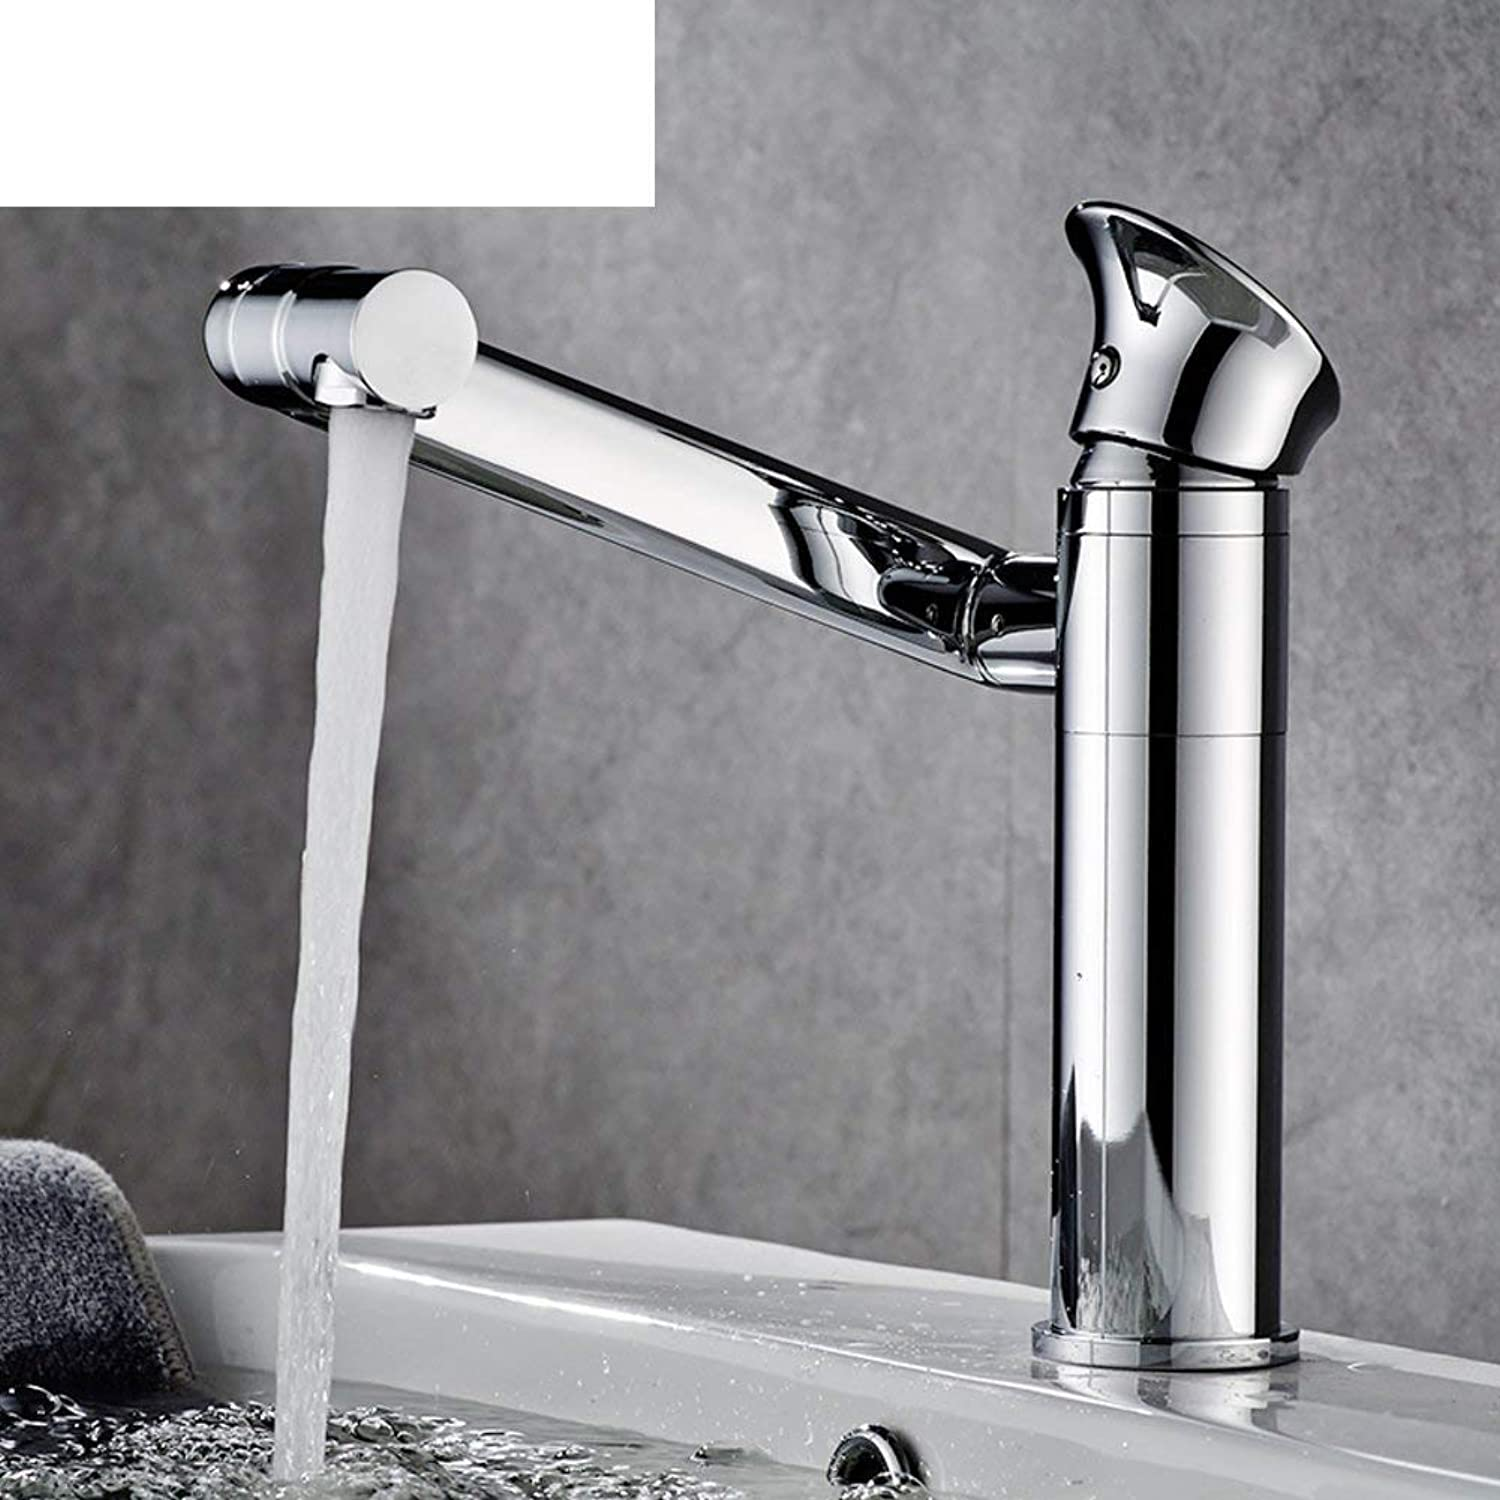 FuweiEncore Basin taps Hot and cold copper single hole faucet Bathroom washbasin faucet-A (color   -, Size   -)